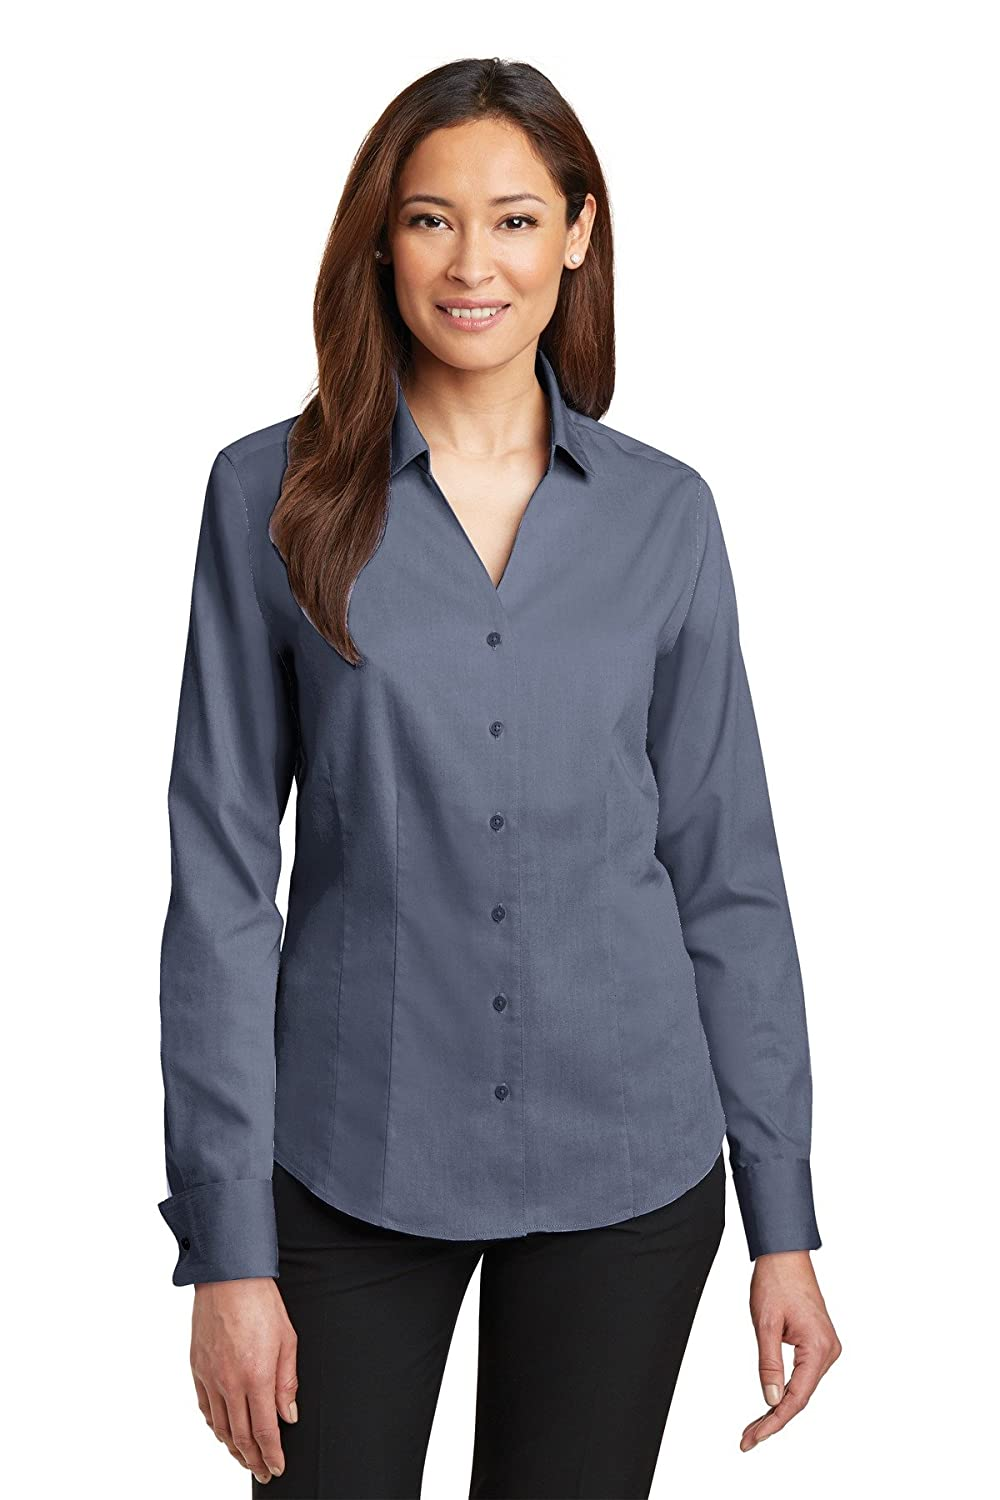 Red House Women's French Cuff Non Iron Pinpoint Oxford